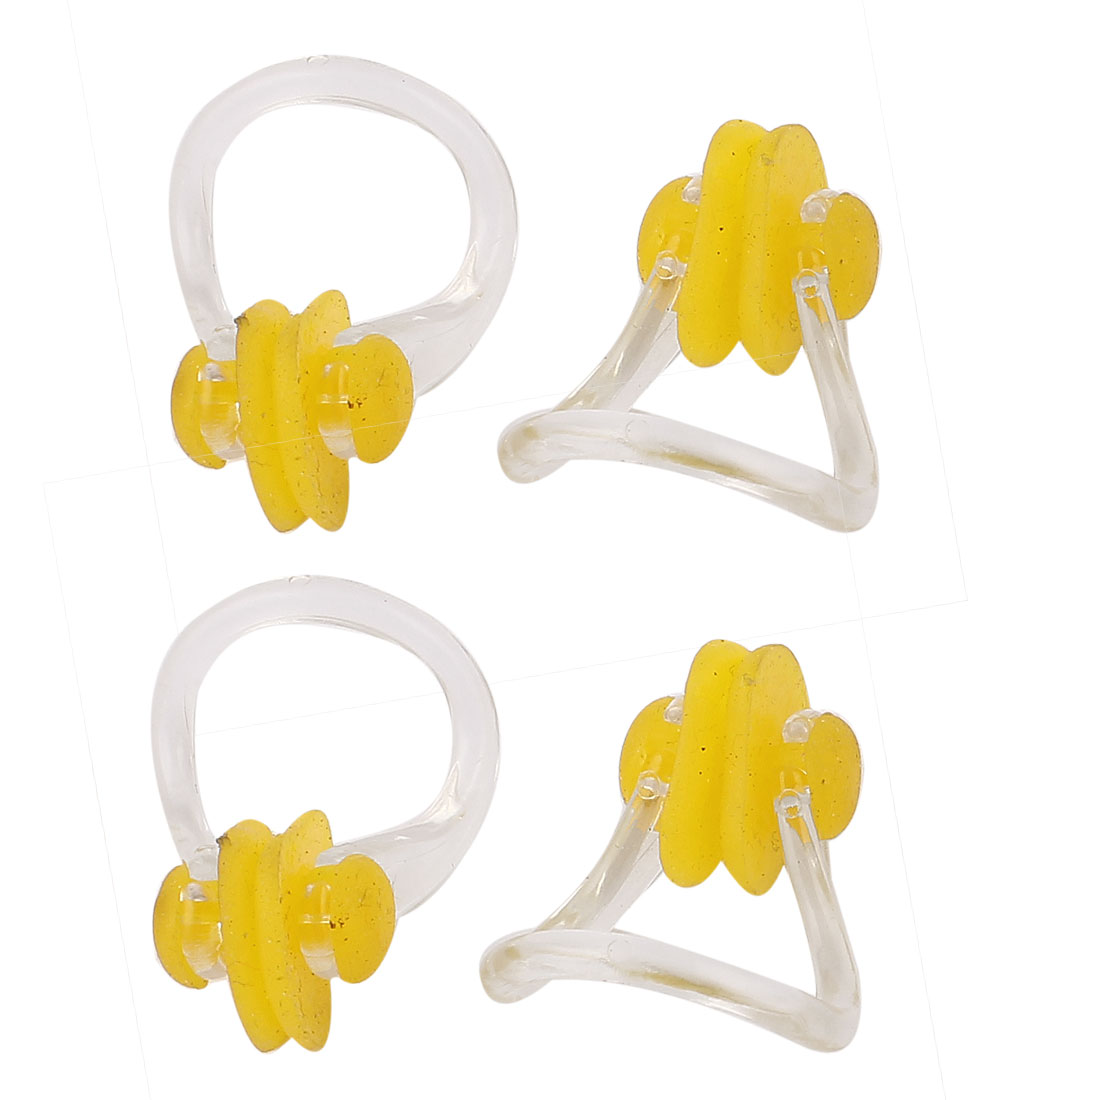 4pcs Clear Plastic Frame Yellow Rubber Pads Swim Training Swimming Noseclip Nose Clip